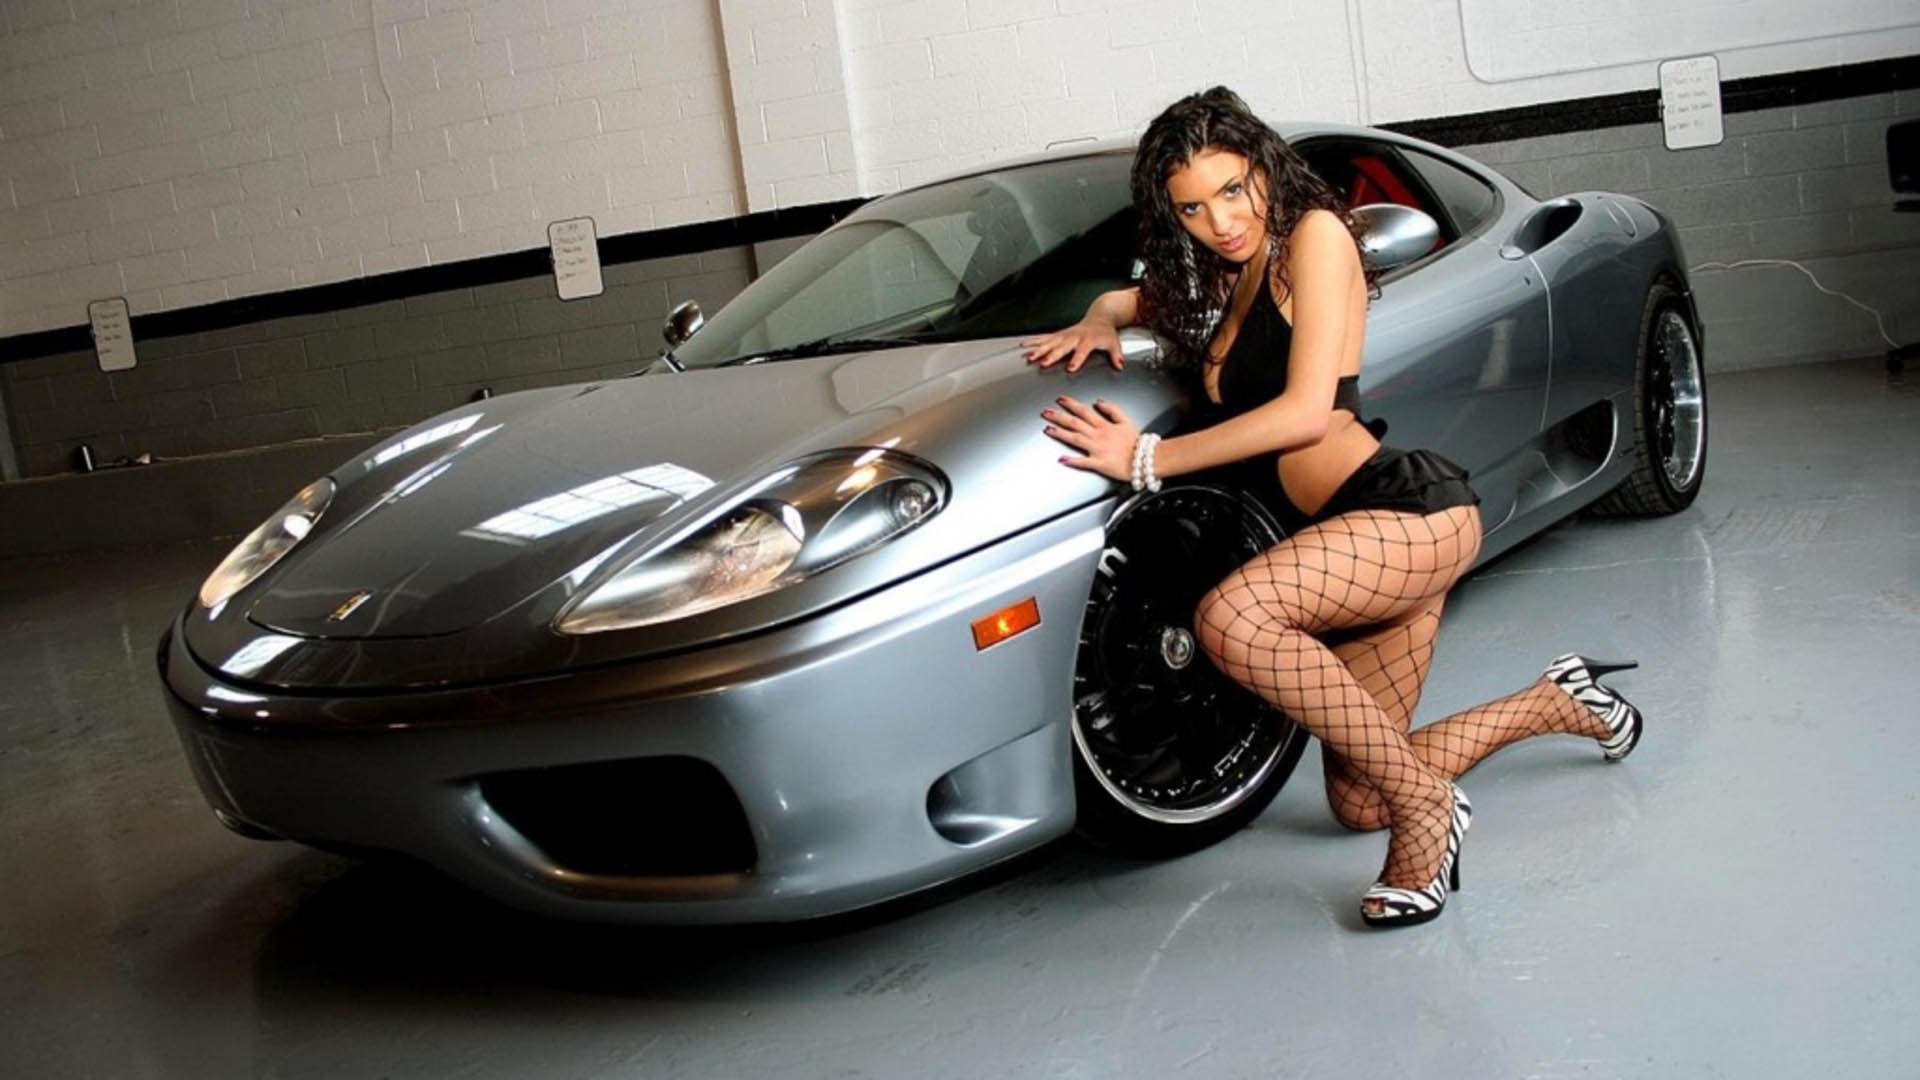 4k Wallpapers Exotic Super Sports Cars 60 Sexy Cars And Girls Wallpaper And Pictures